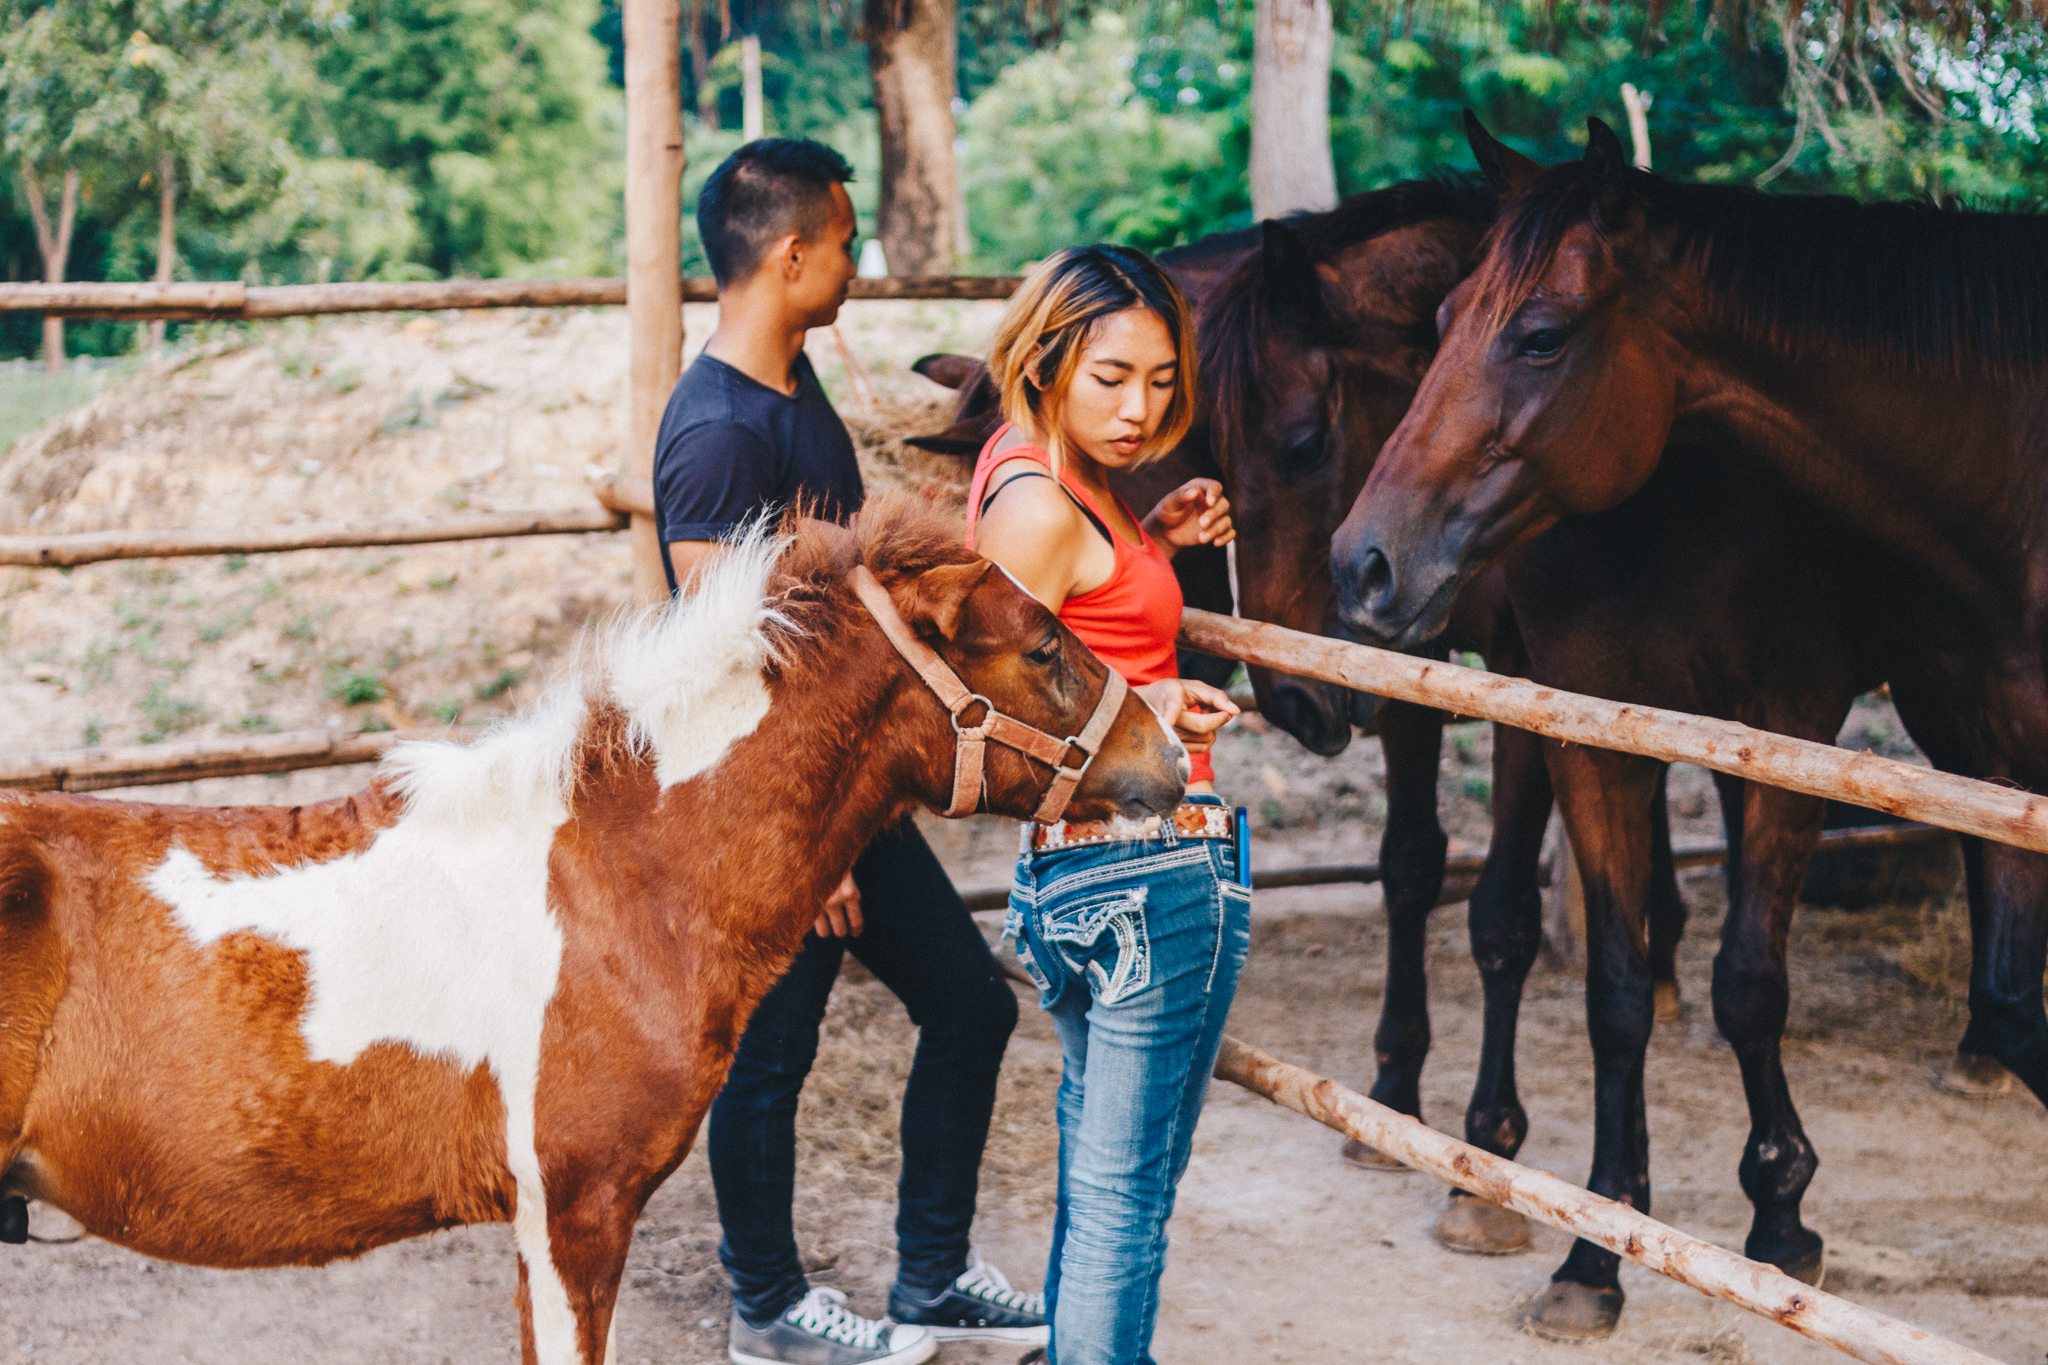 Second-Wind-Horse-Rescue-Ranch-ChaingMai-Suniko-Photo-October-2018-68.jpg